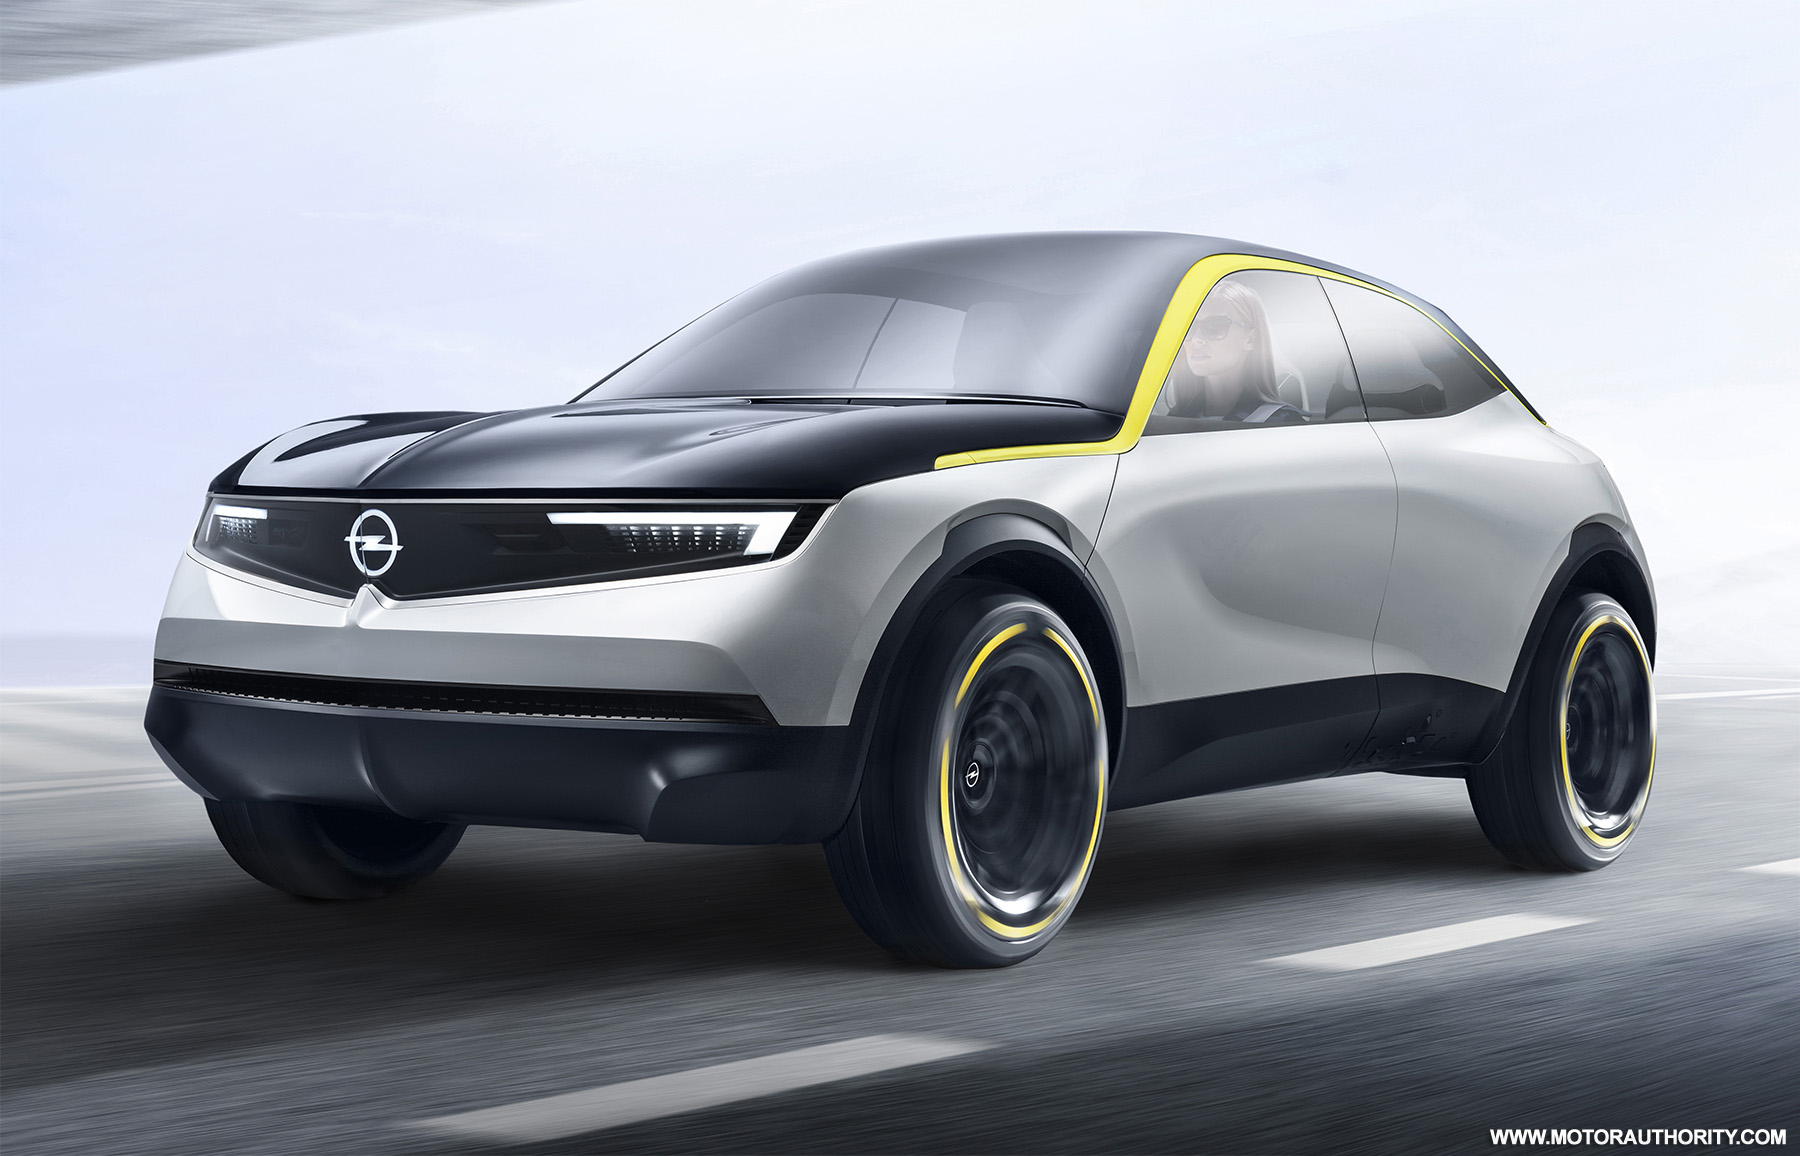 Opel Gt X Experimental Concept Debuts New Design Language